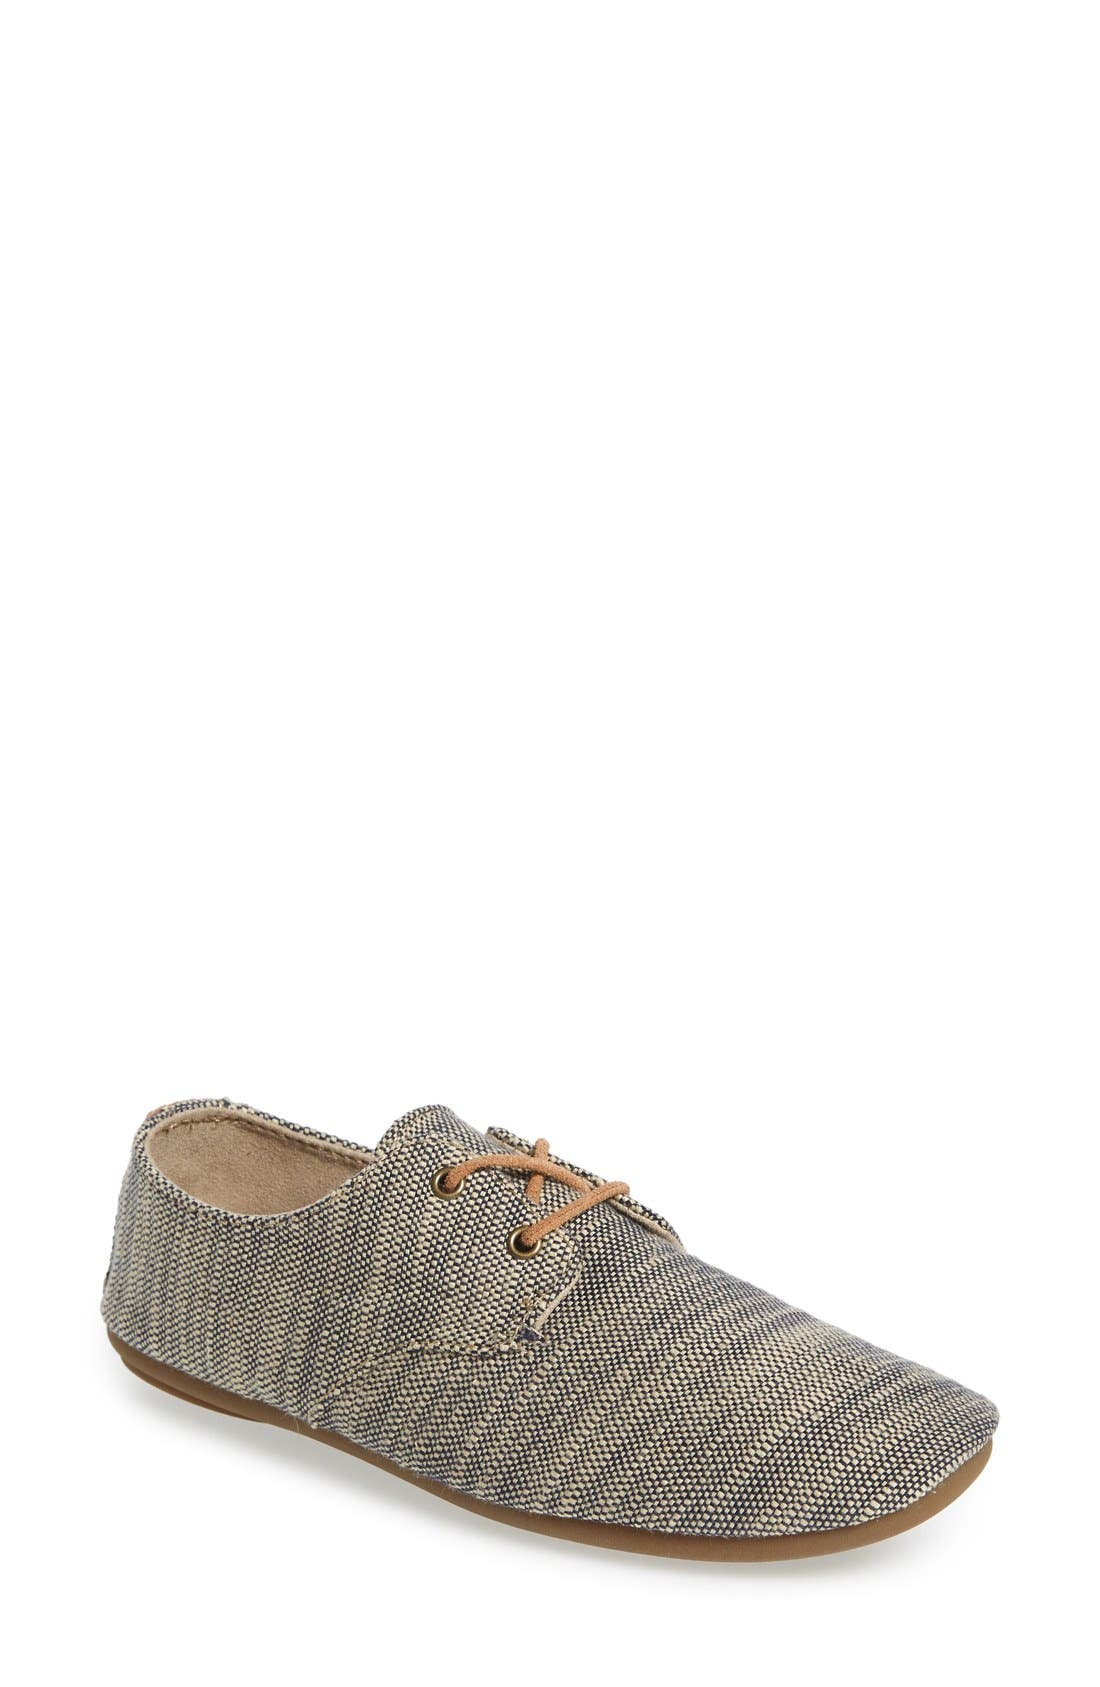 'Bianca' Oxford Flat,                         Main,                         color, Slate